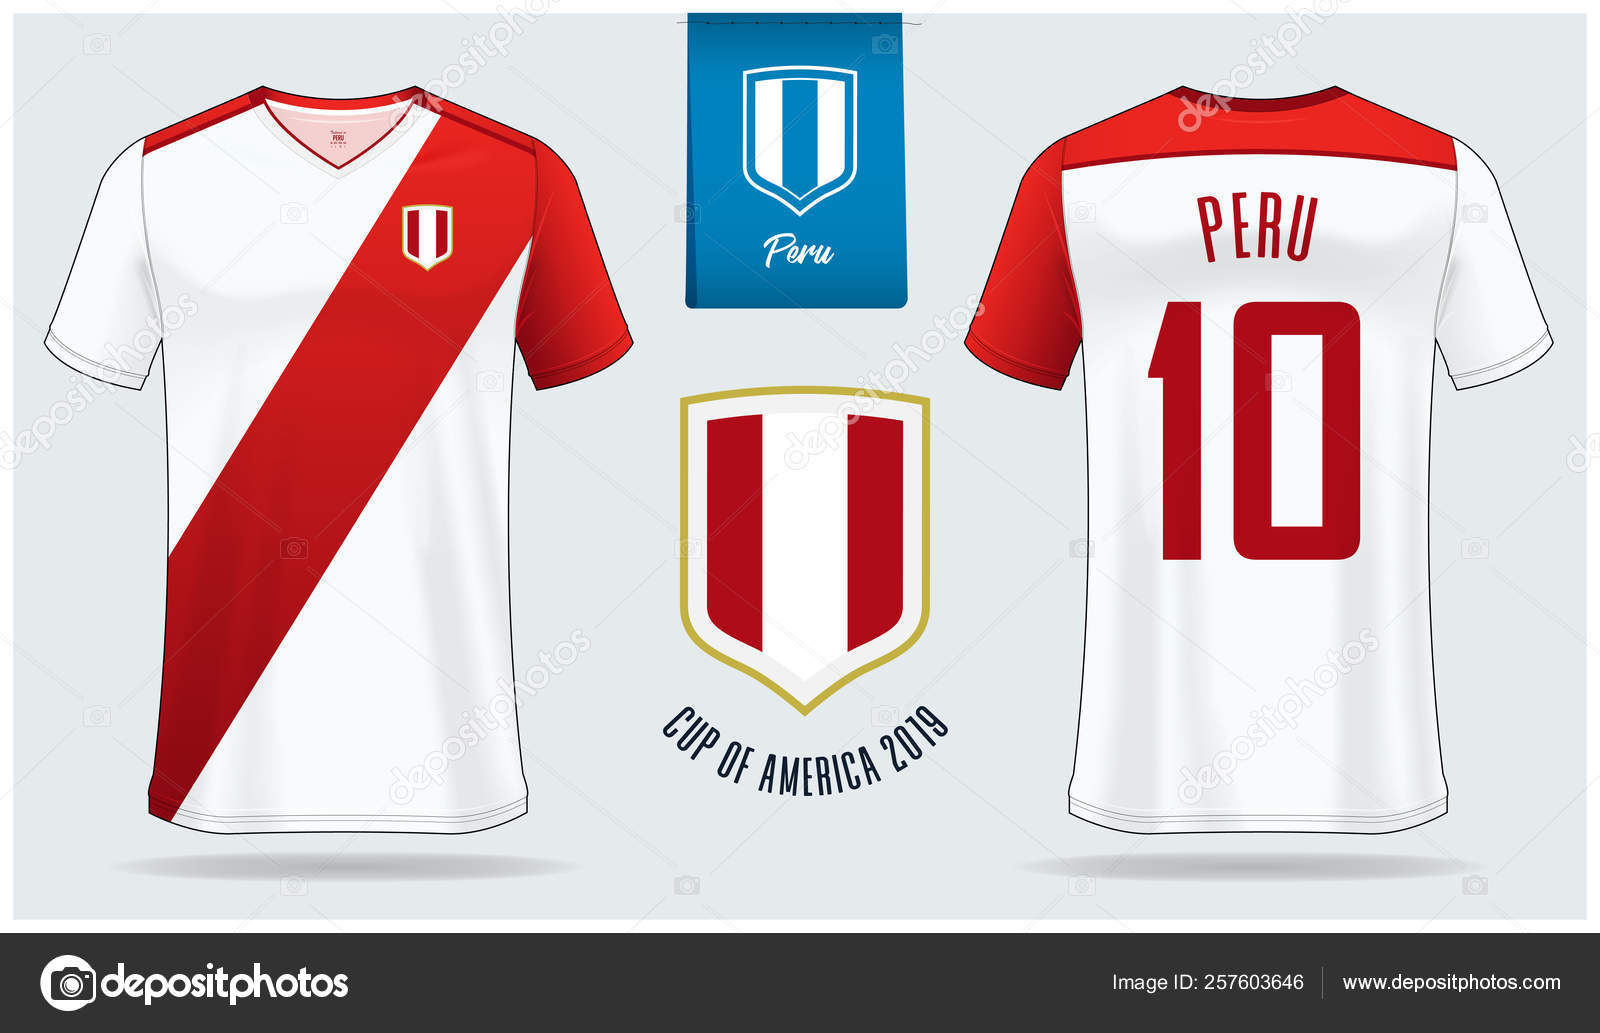 74d19479e Vector Illustration– stock illustration. Set of soccer jersey or football  kit mockup template design for Peru national football team.